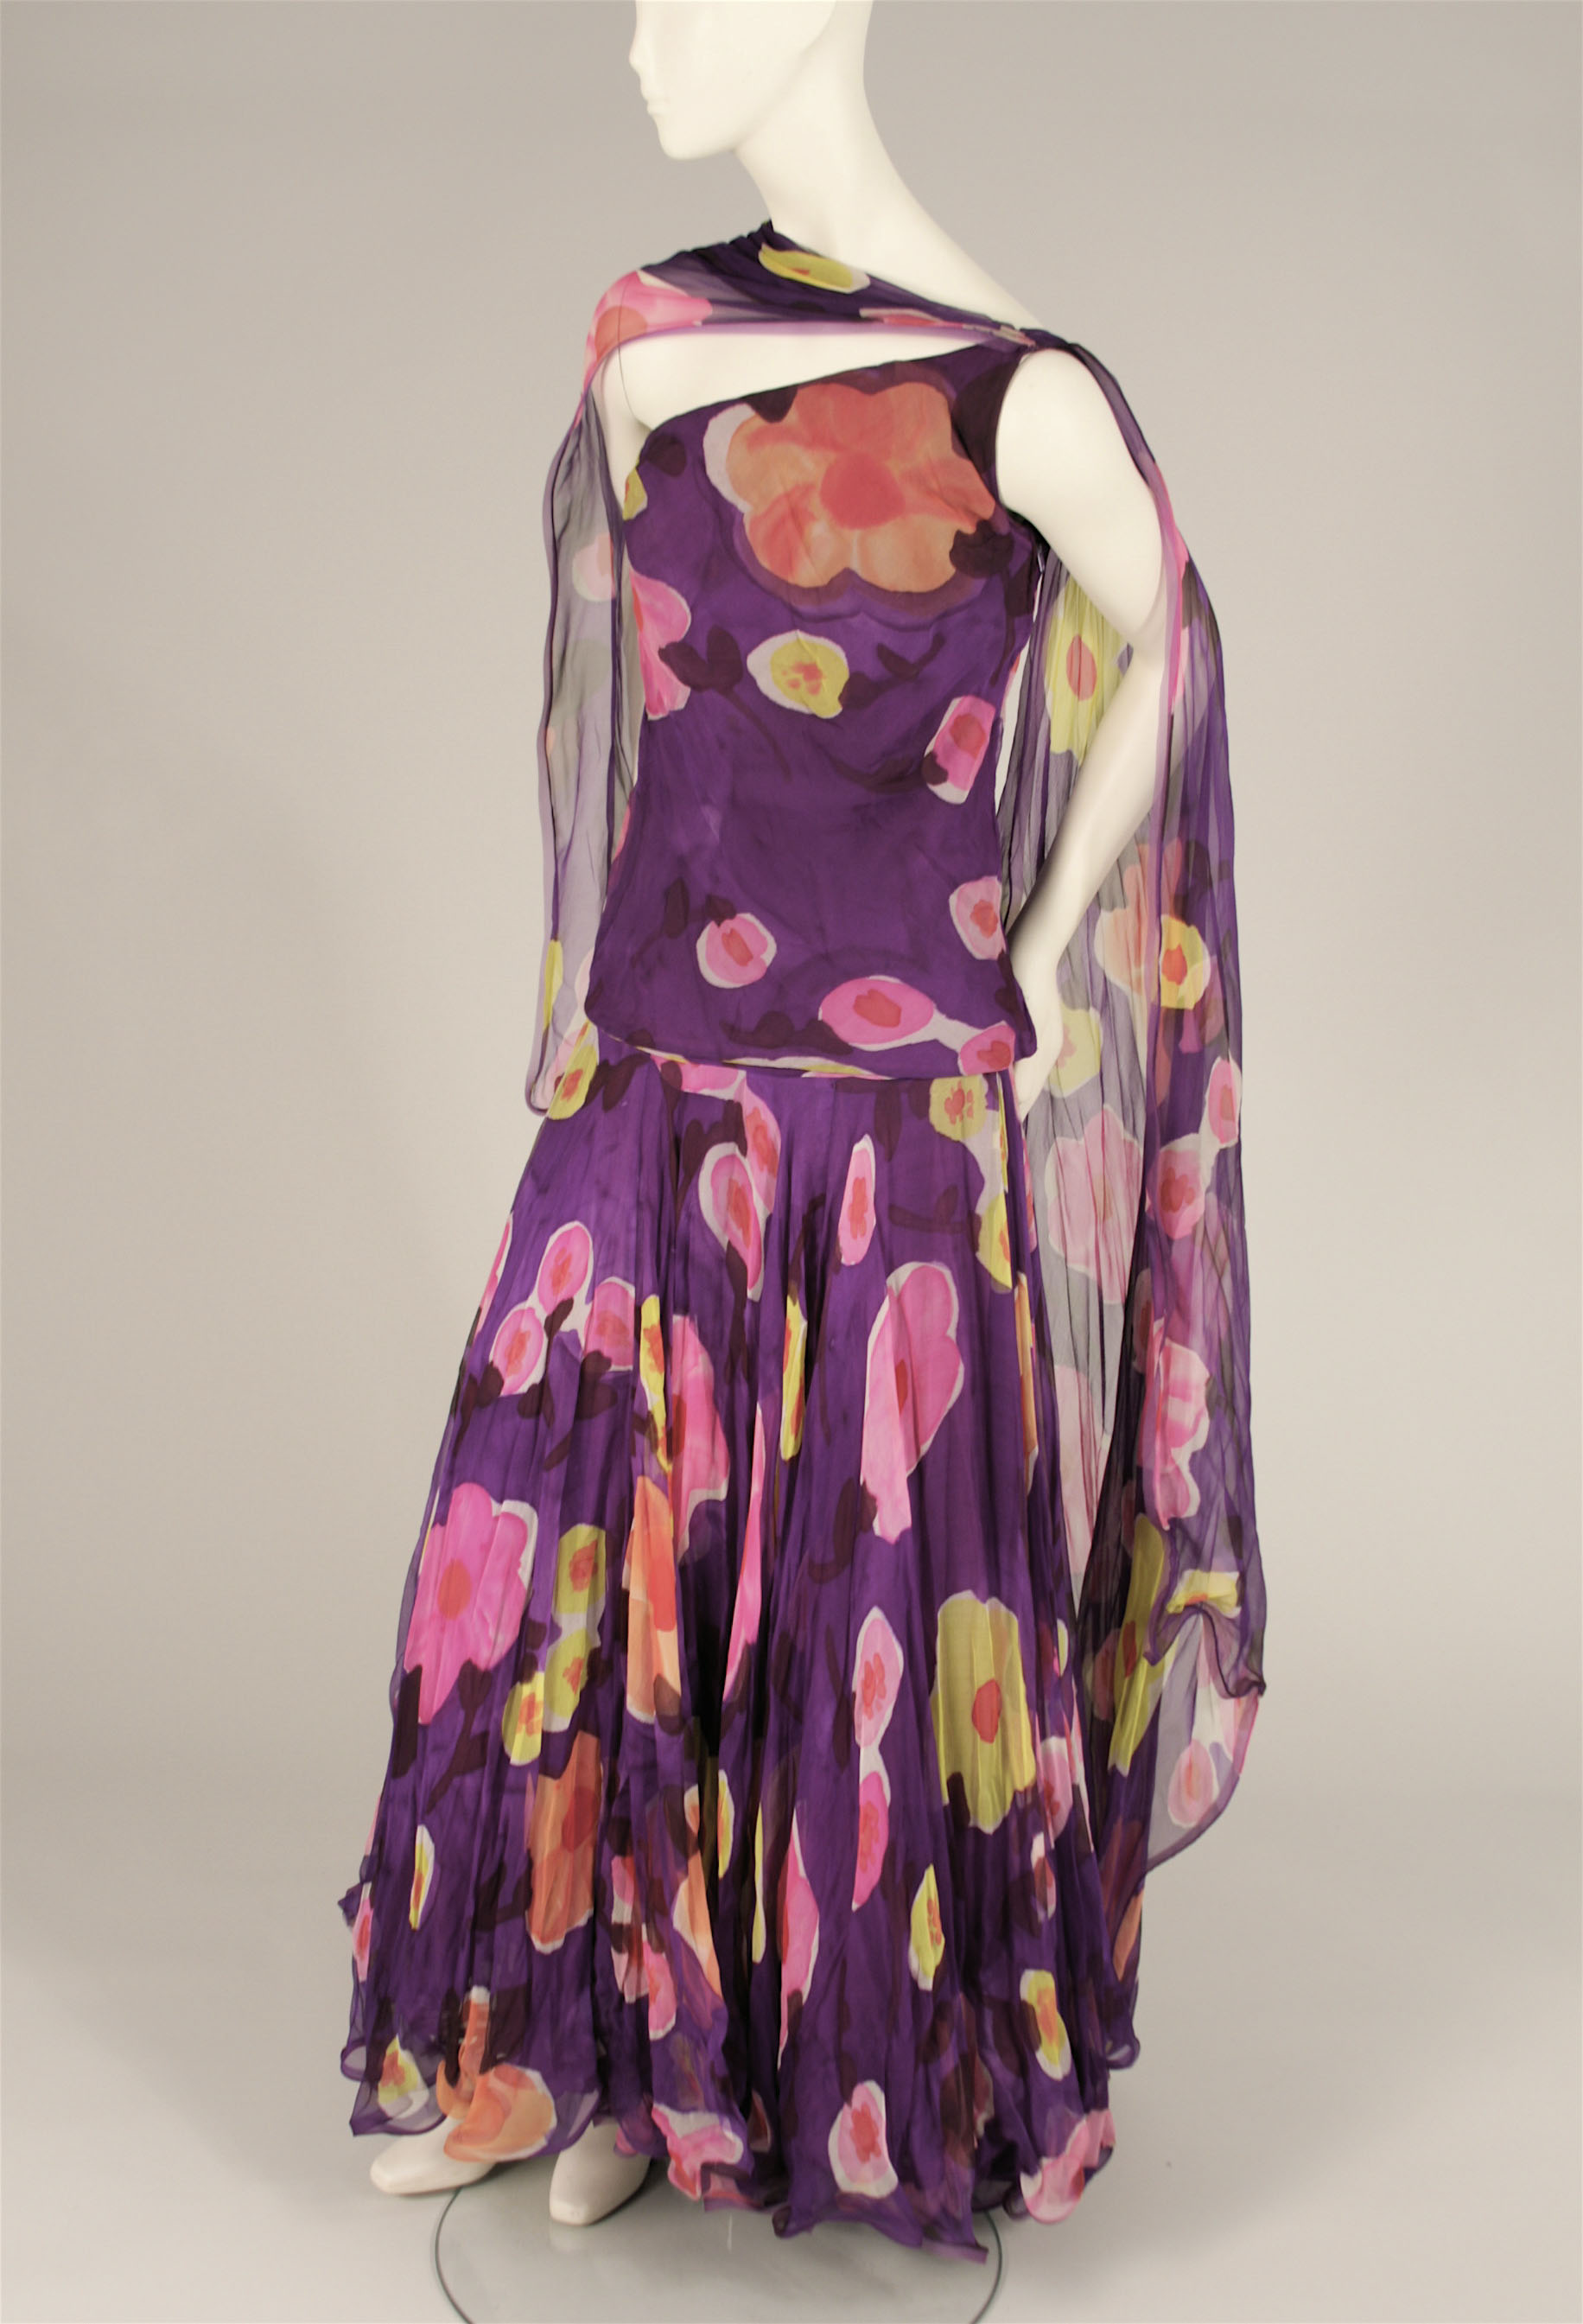 Mod Women: New York Fashion of the 1960s   MCNY Blog: New York Stories